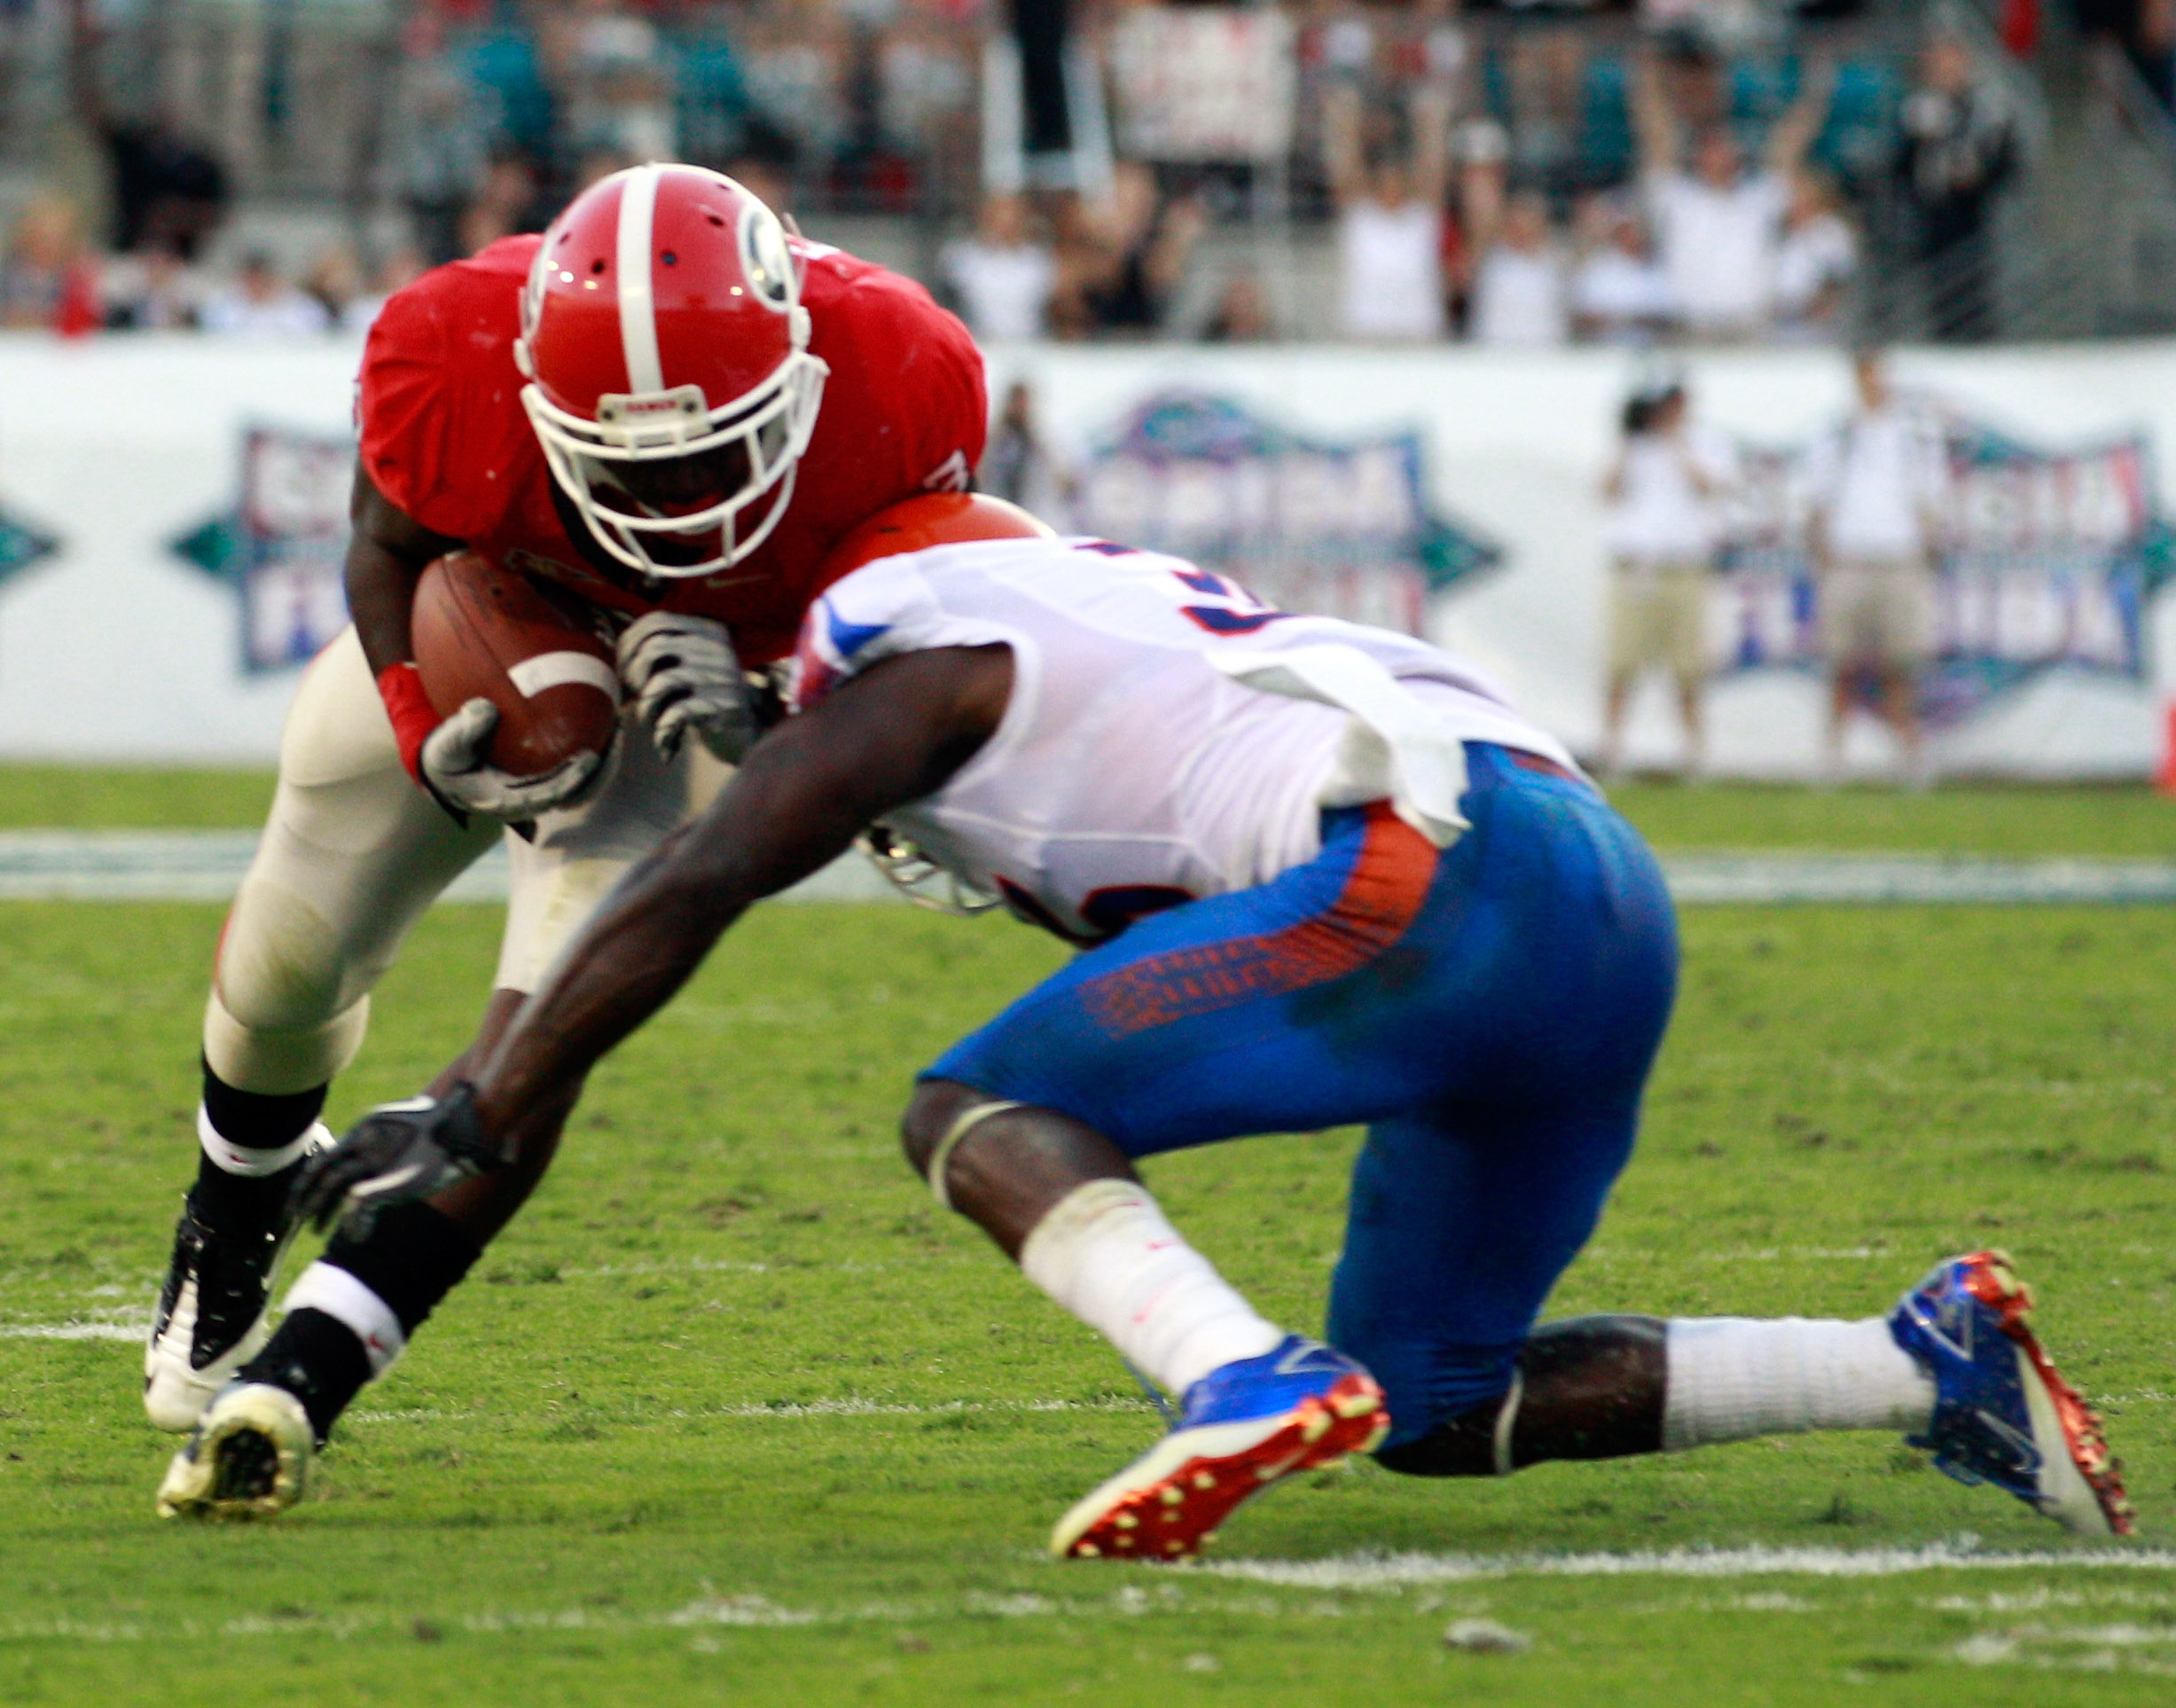 JACKSONVILLE, FL - OCTOBER 30:  Washaun Ealey #3 of the Georgia Bulldogs attempts to run past Ahmad Black #35 of the Florida Gators during the game at EverBank Field on October 30, 2010 in Jacksonville, Florida.  (Photo by Sam Greenwood/Getty Images)